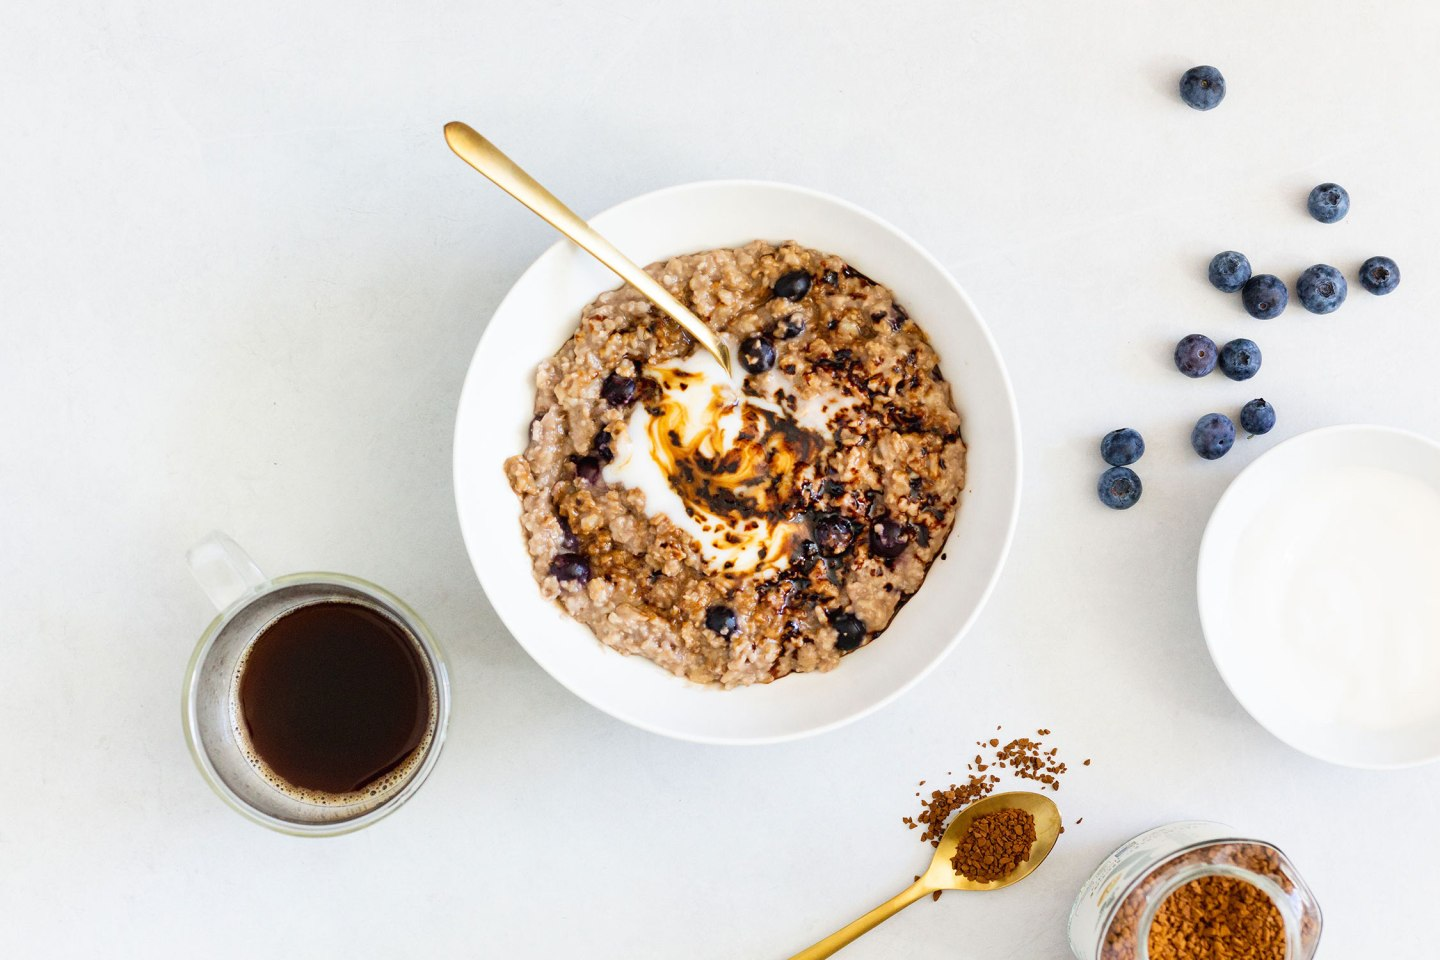 Coffee Blueberry Oatmeal (gluten-free, dairy-free, vegan)